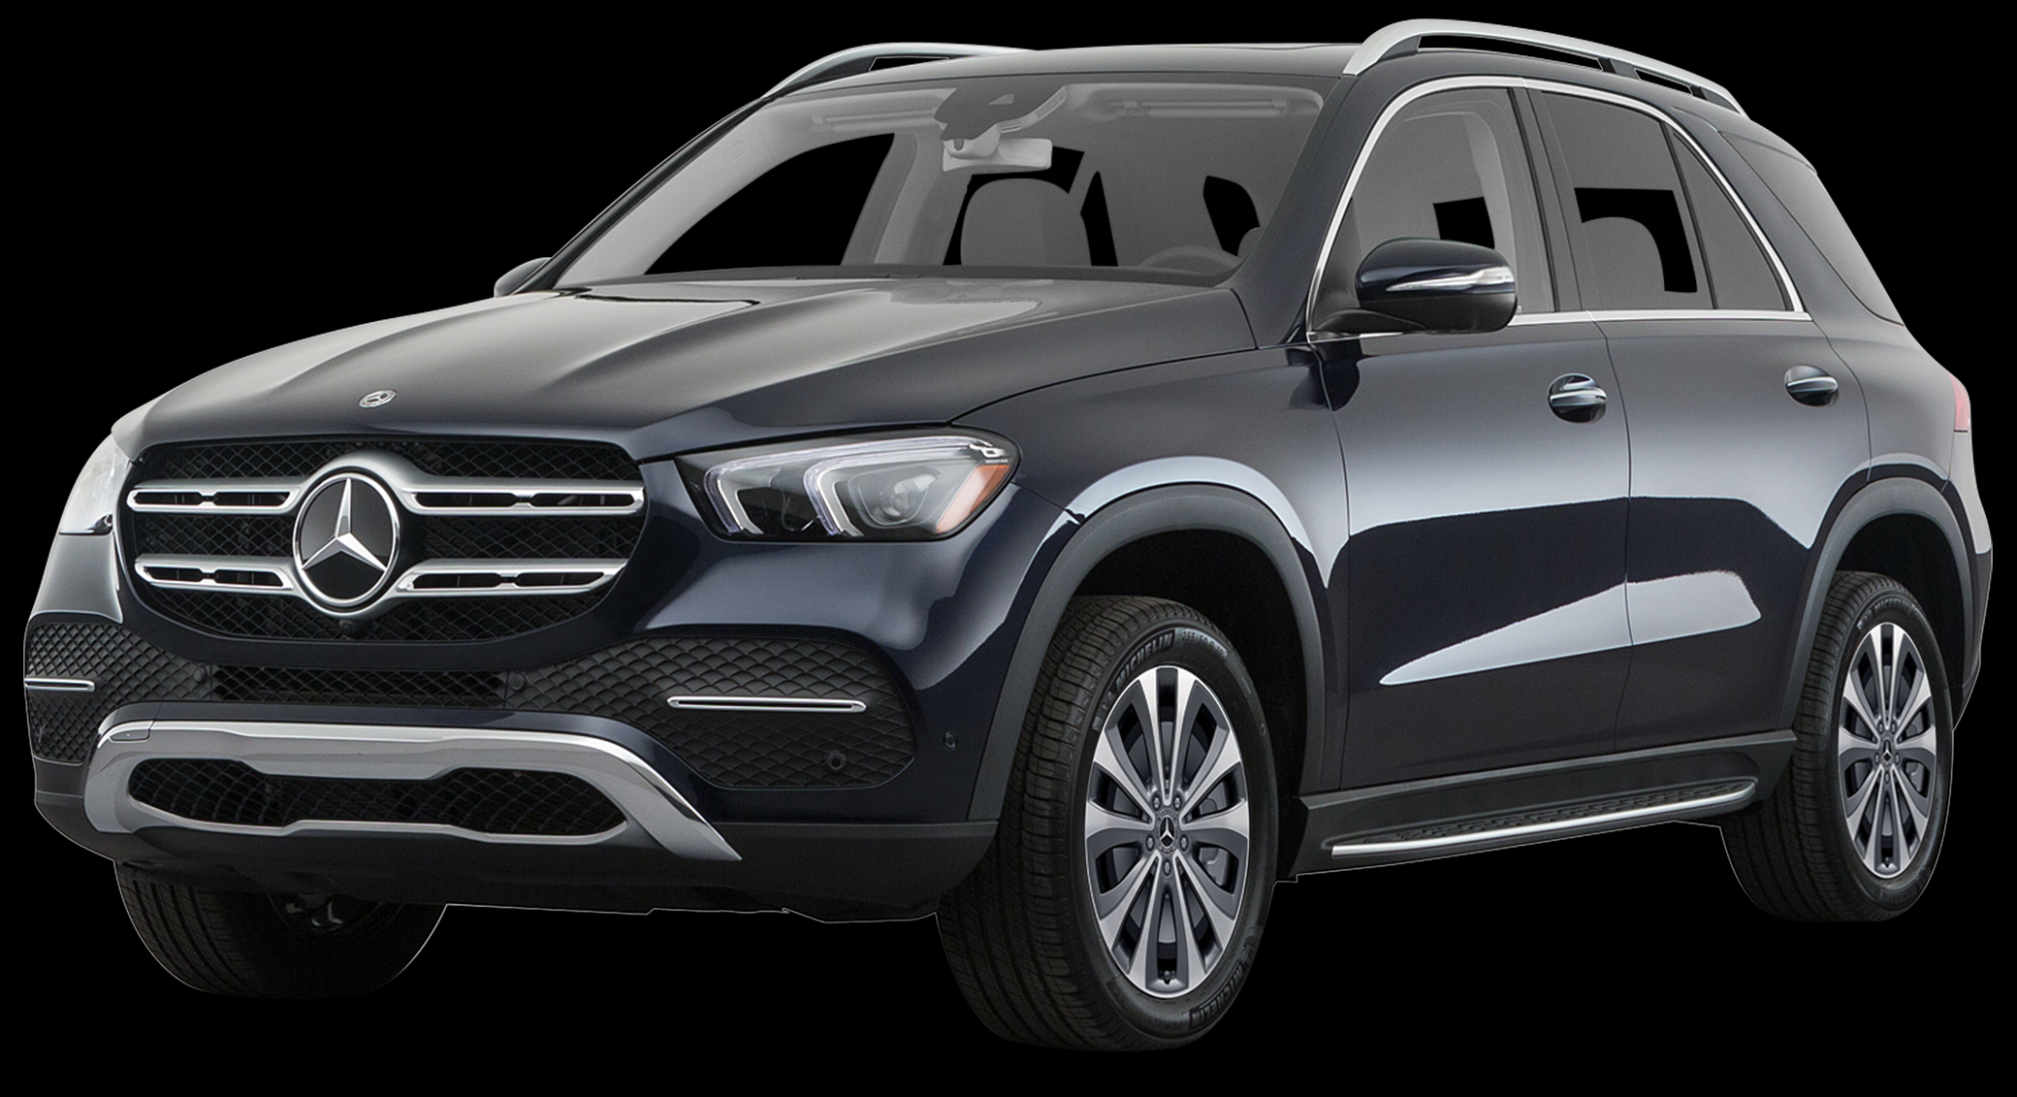 12 Mercedes-Benz GLE 12 Incentives, Specials & Offers in Dublin OH - mercedes 2020 offers